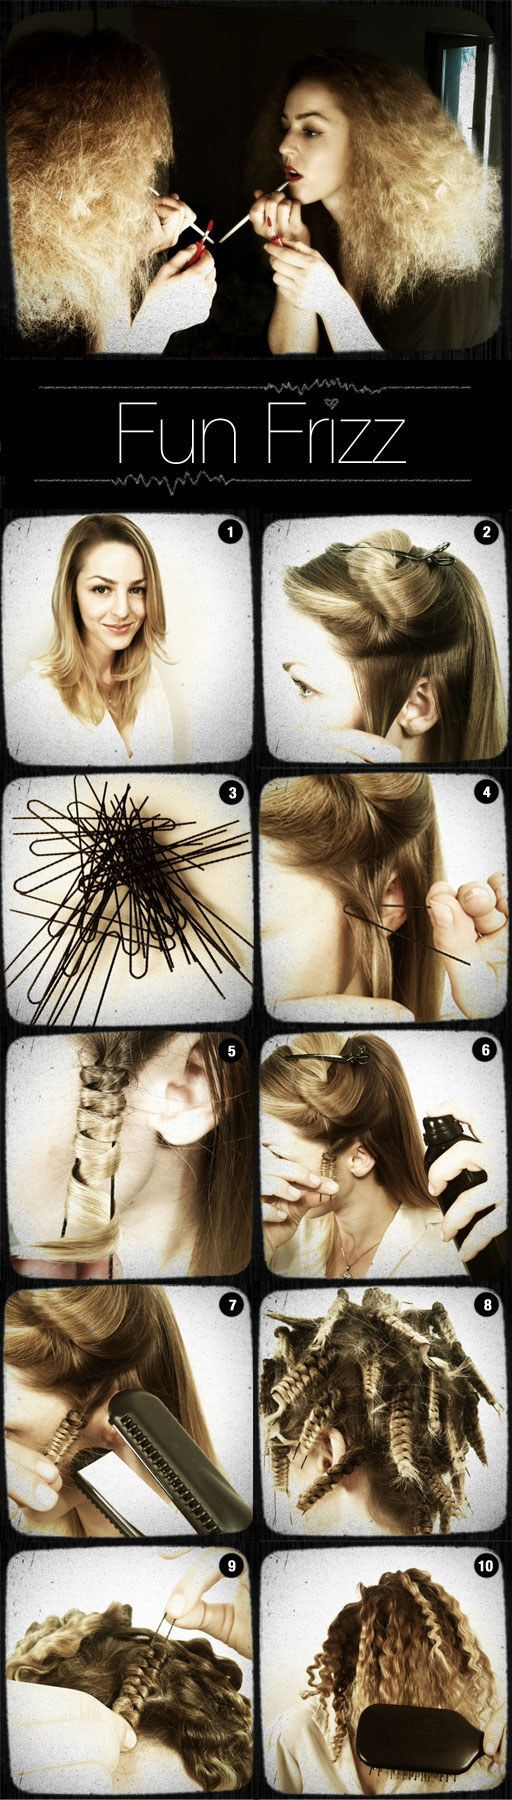 Hairstyles Of Famous Characters That You Can Do Yourself